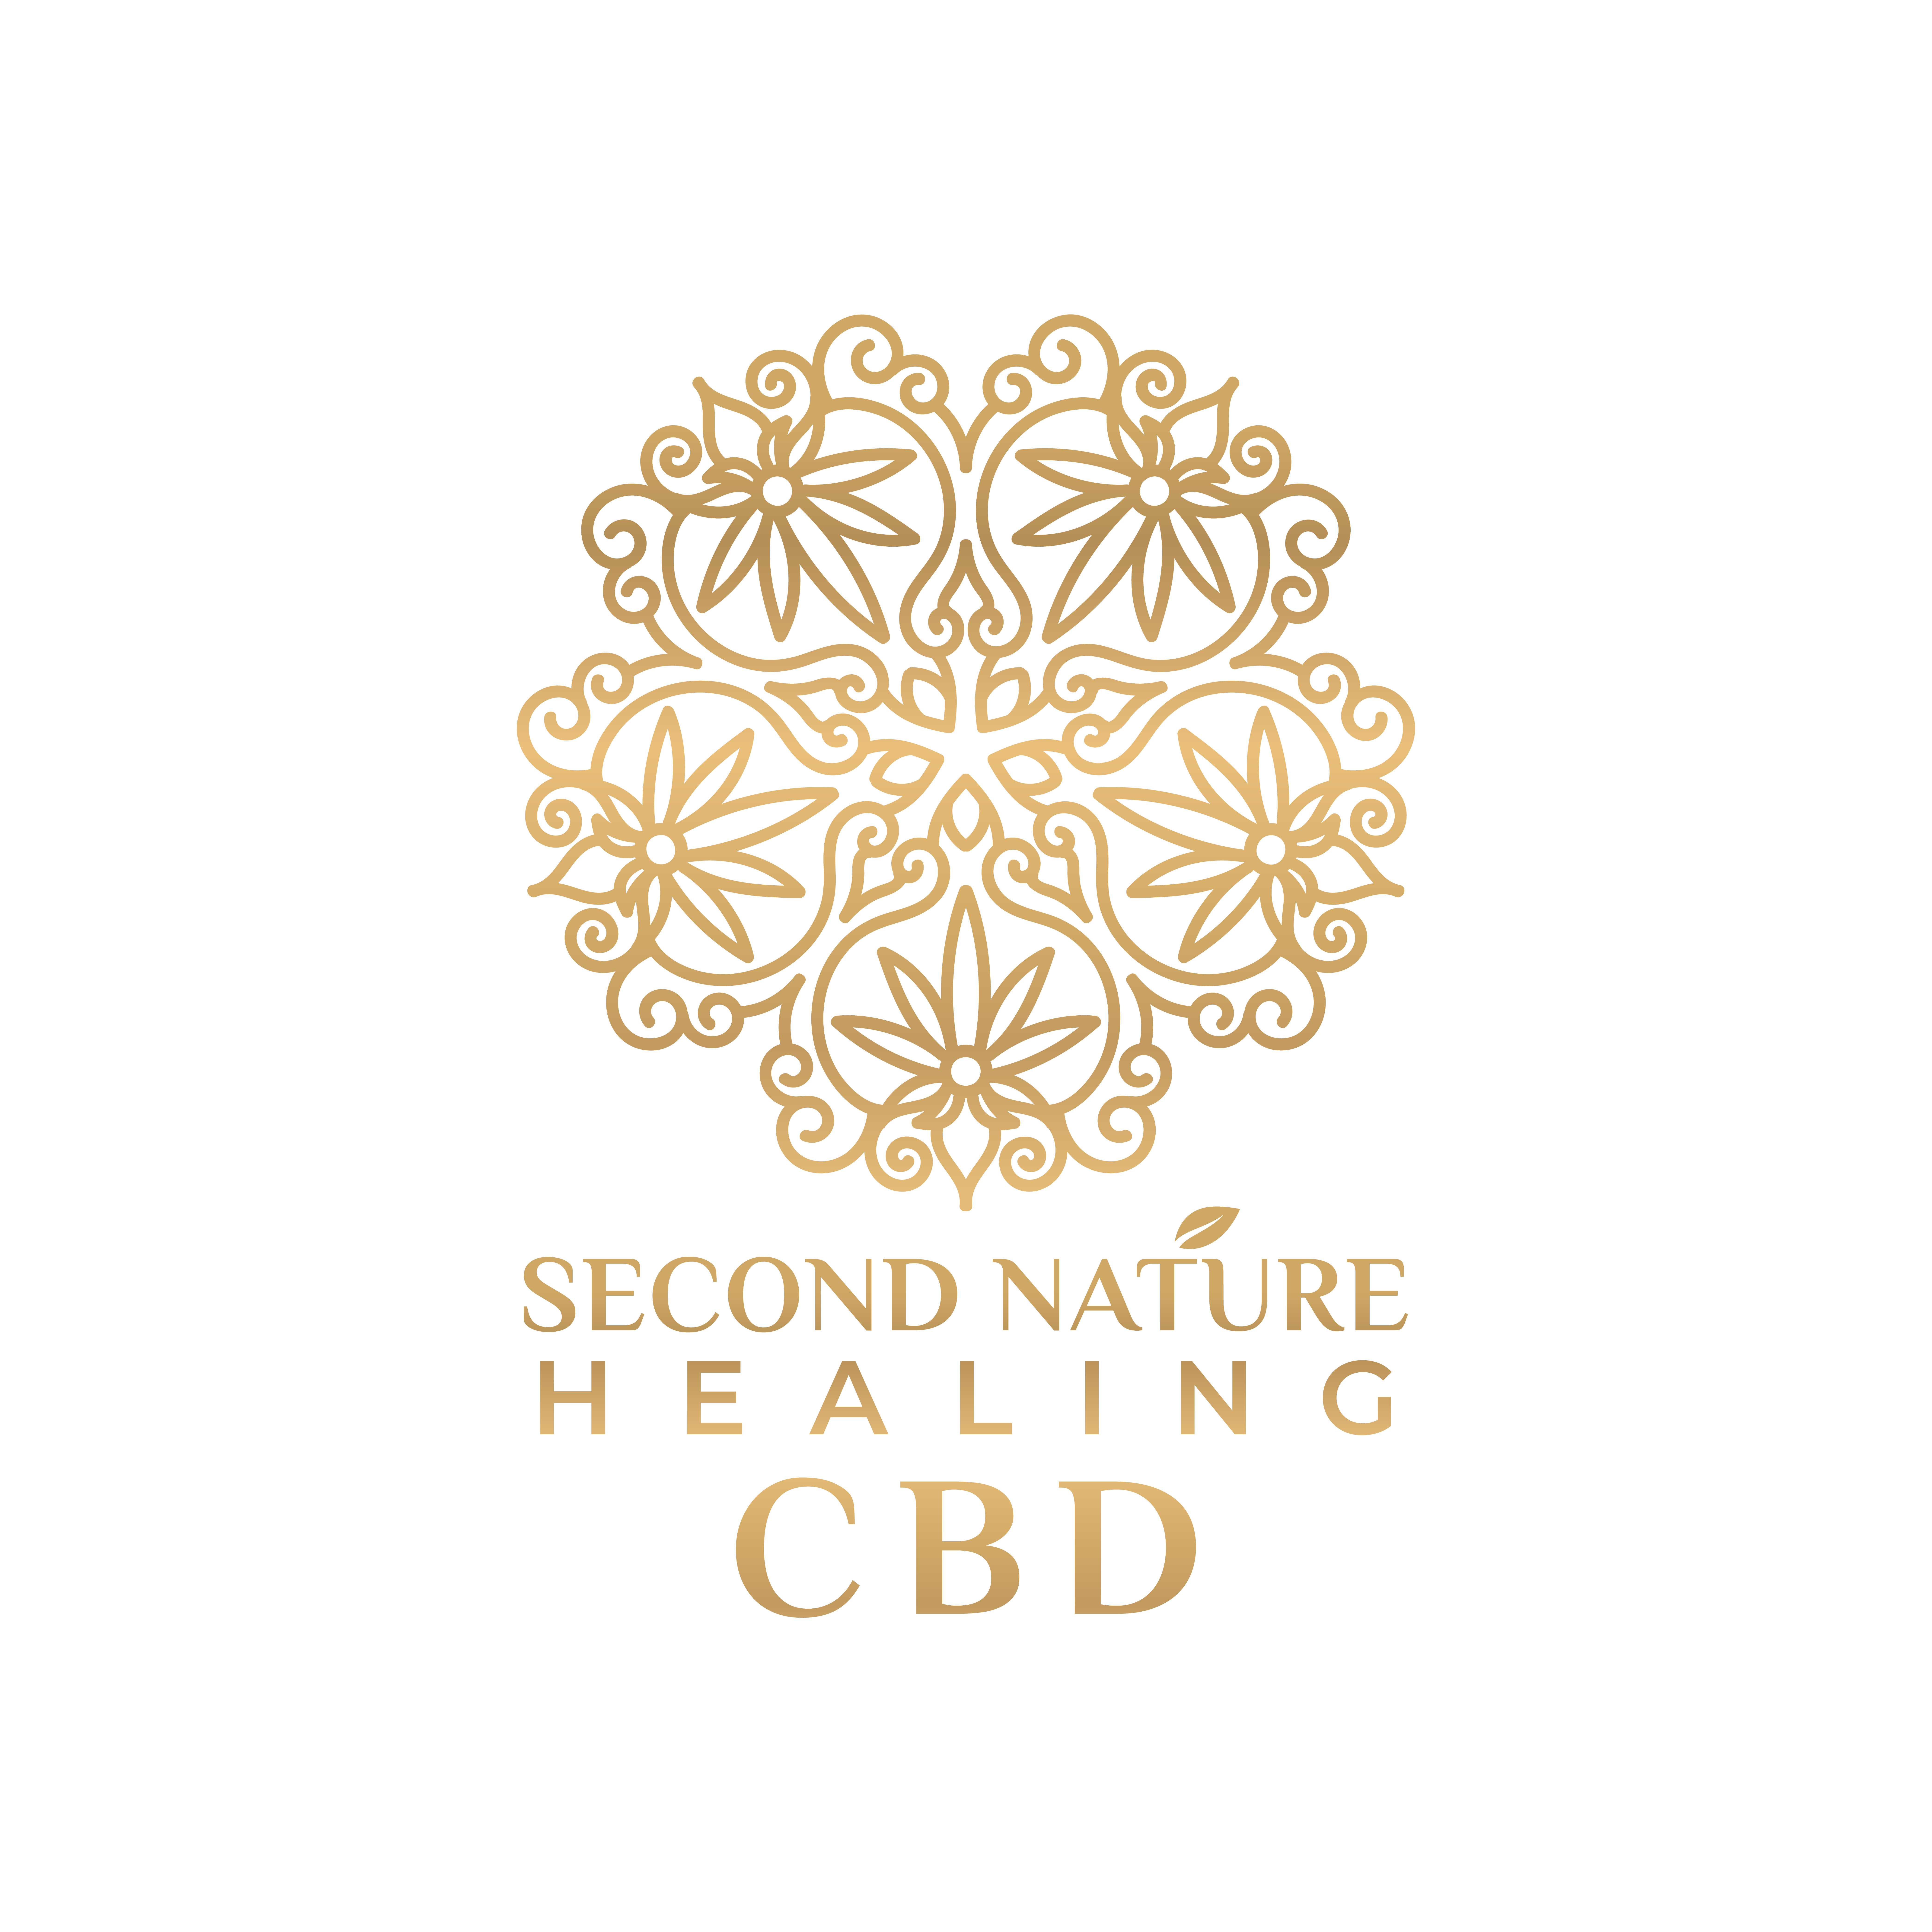 Create a logo for healing CBD products blending nature and science